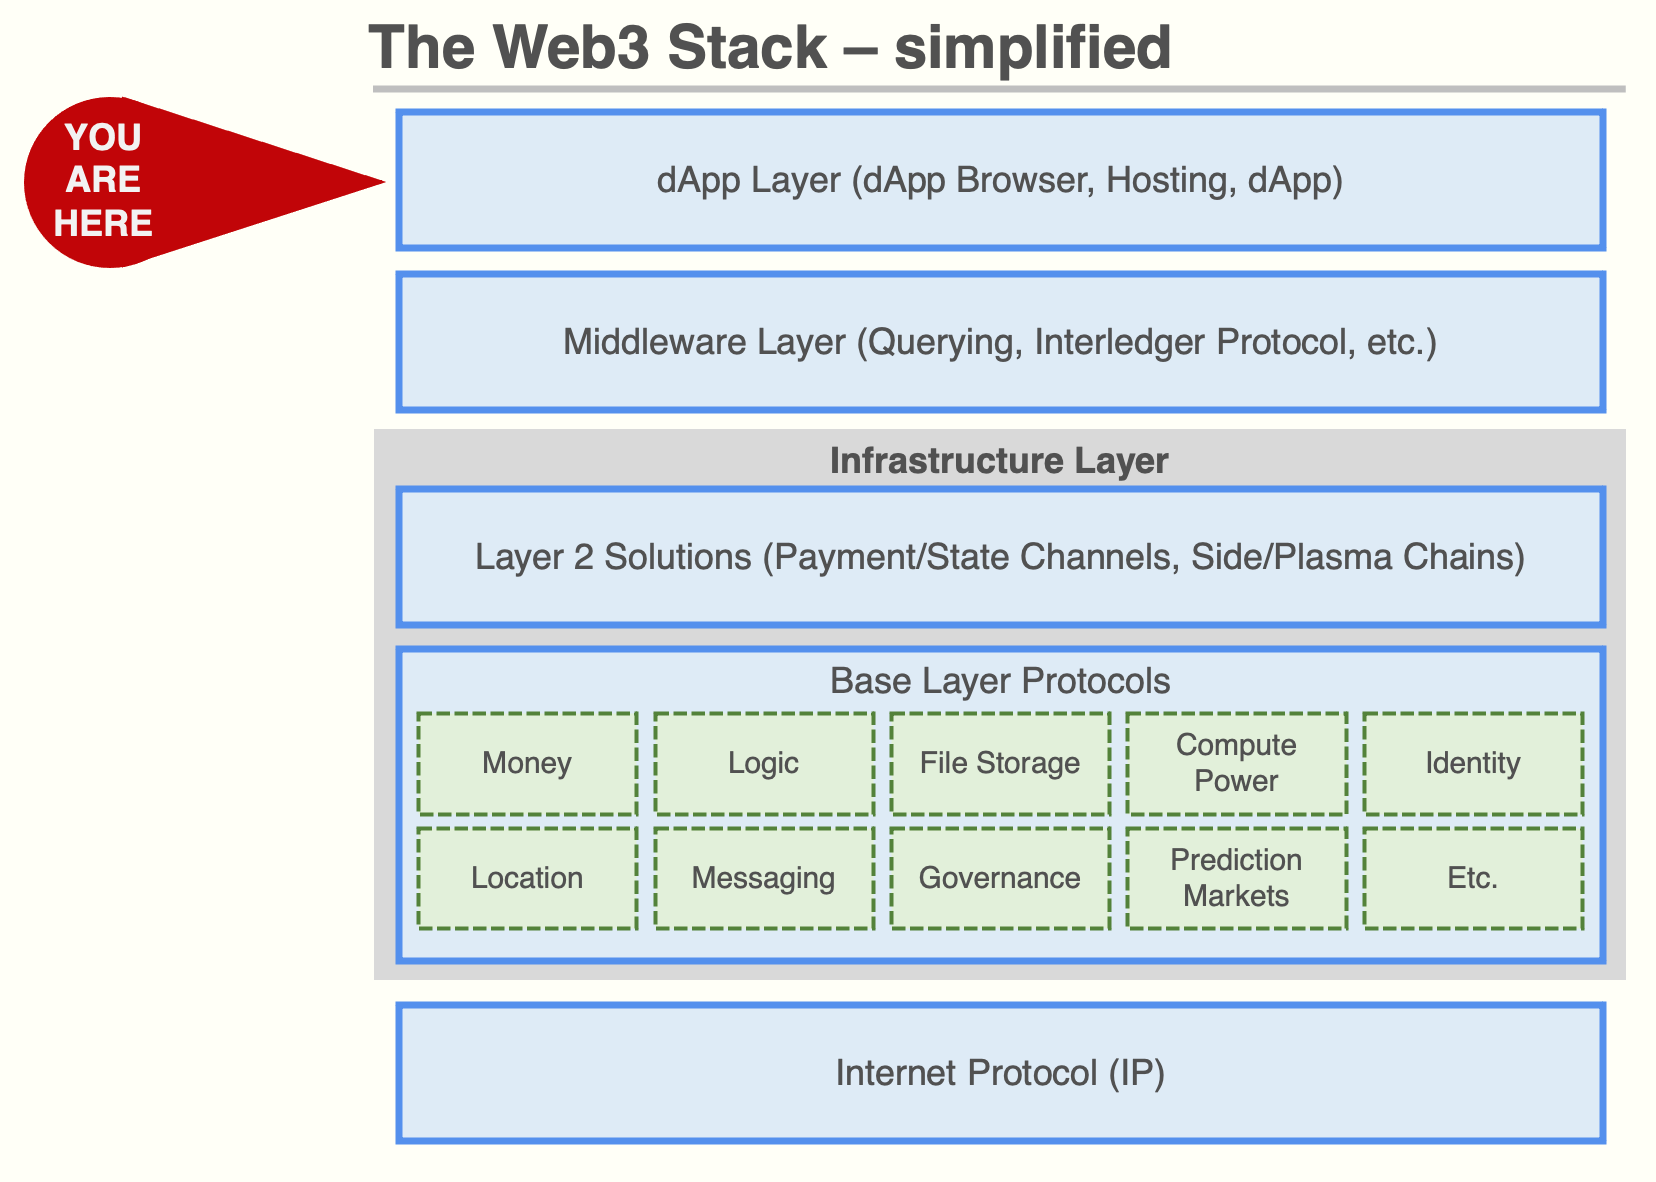 The Web3 Stack simplified into four layers (dApp Layer, Middleware Layer, Infrastructure Layer, and Internet Protocol).